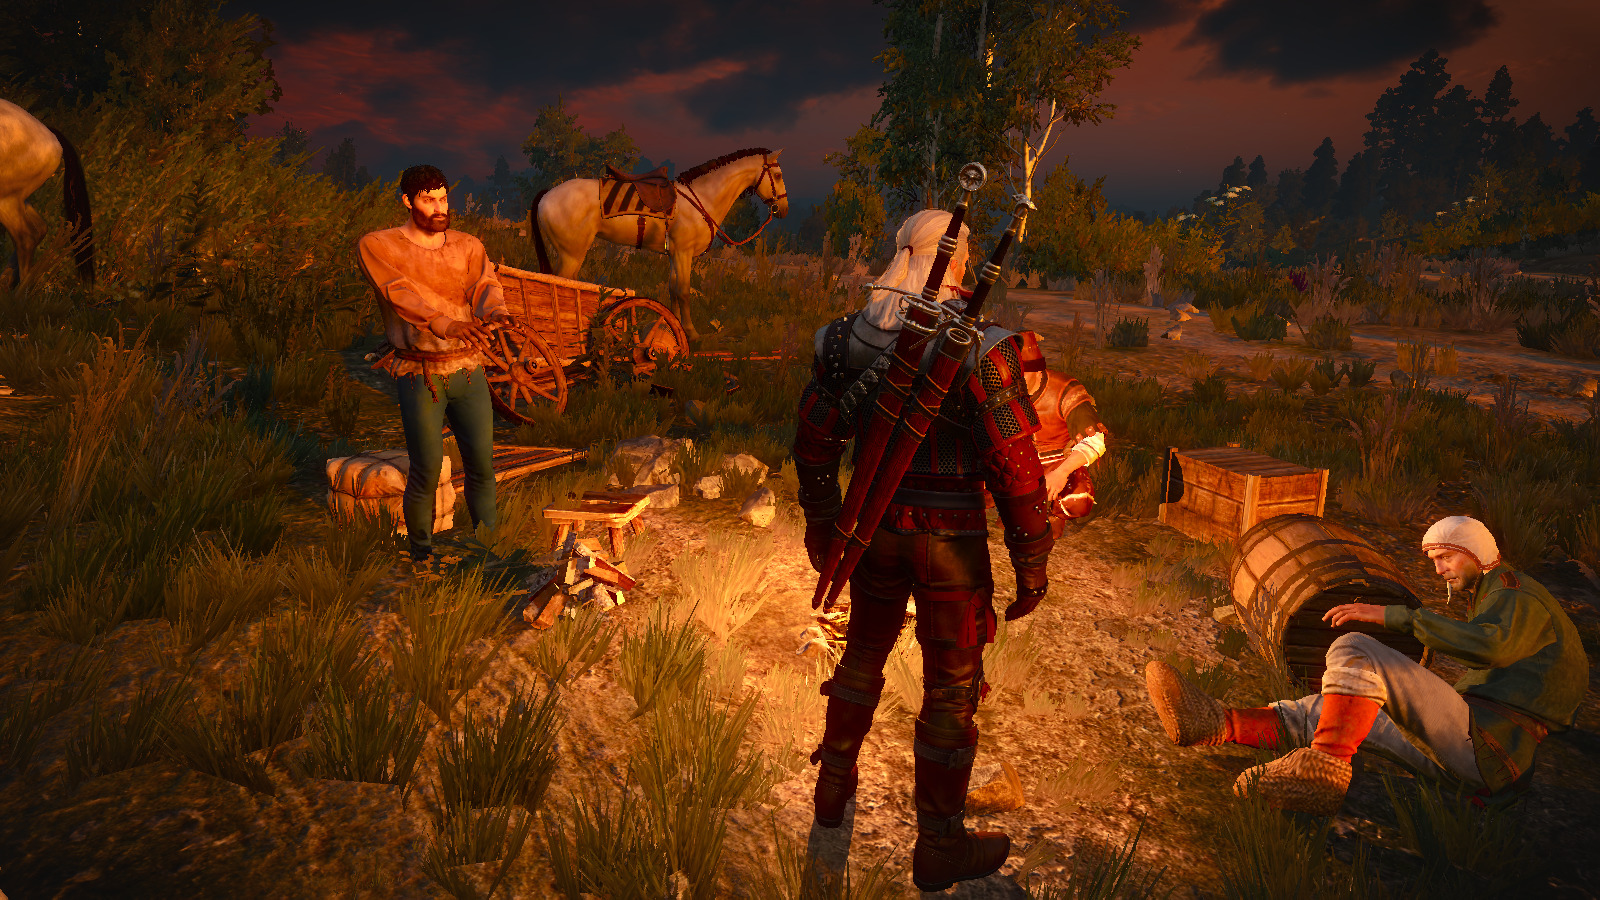 witcher3_2018-05-29_18-23-18-81.jpg - Witcher 3: Wild Hunt, the